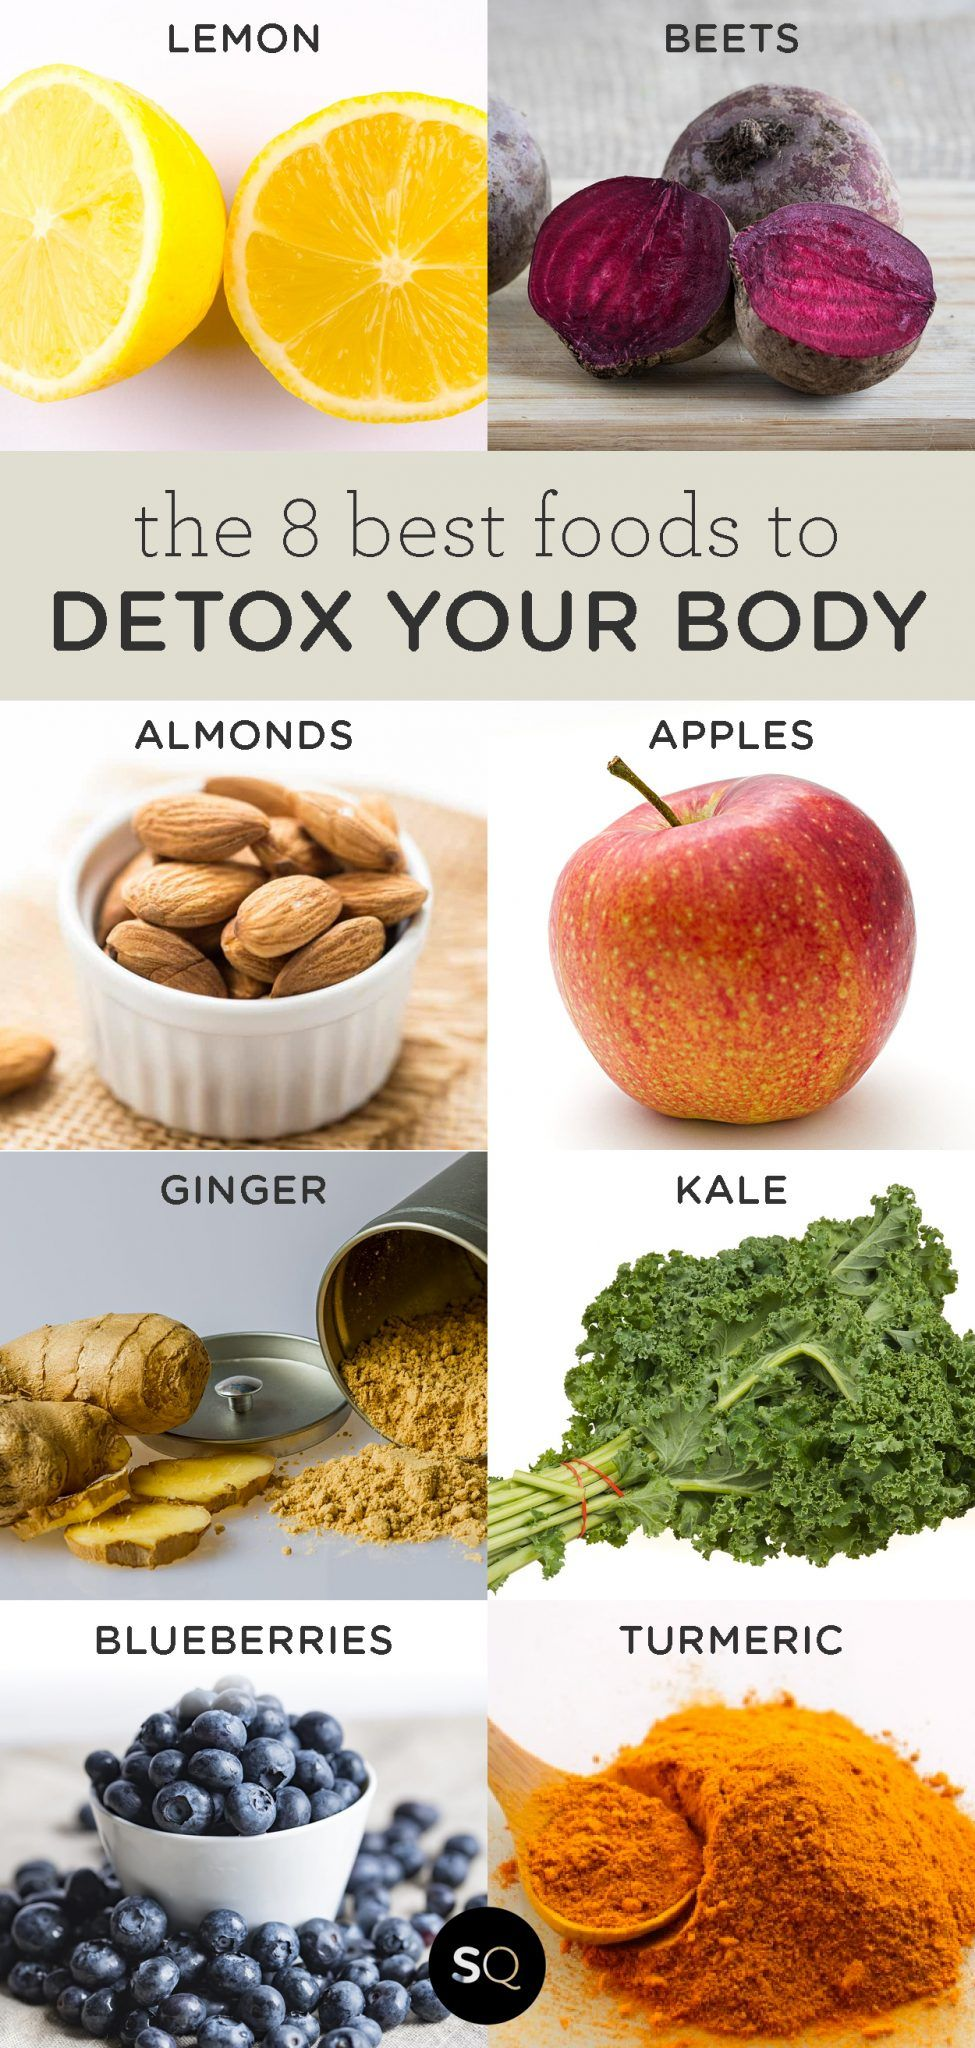 The 8 Best Foods to DETOX your body This list is full of foods perfect for kickstarting weight loss and healthy detoxing after the holidays